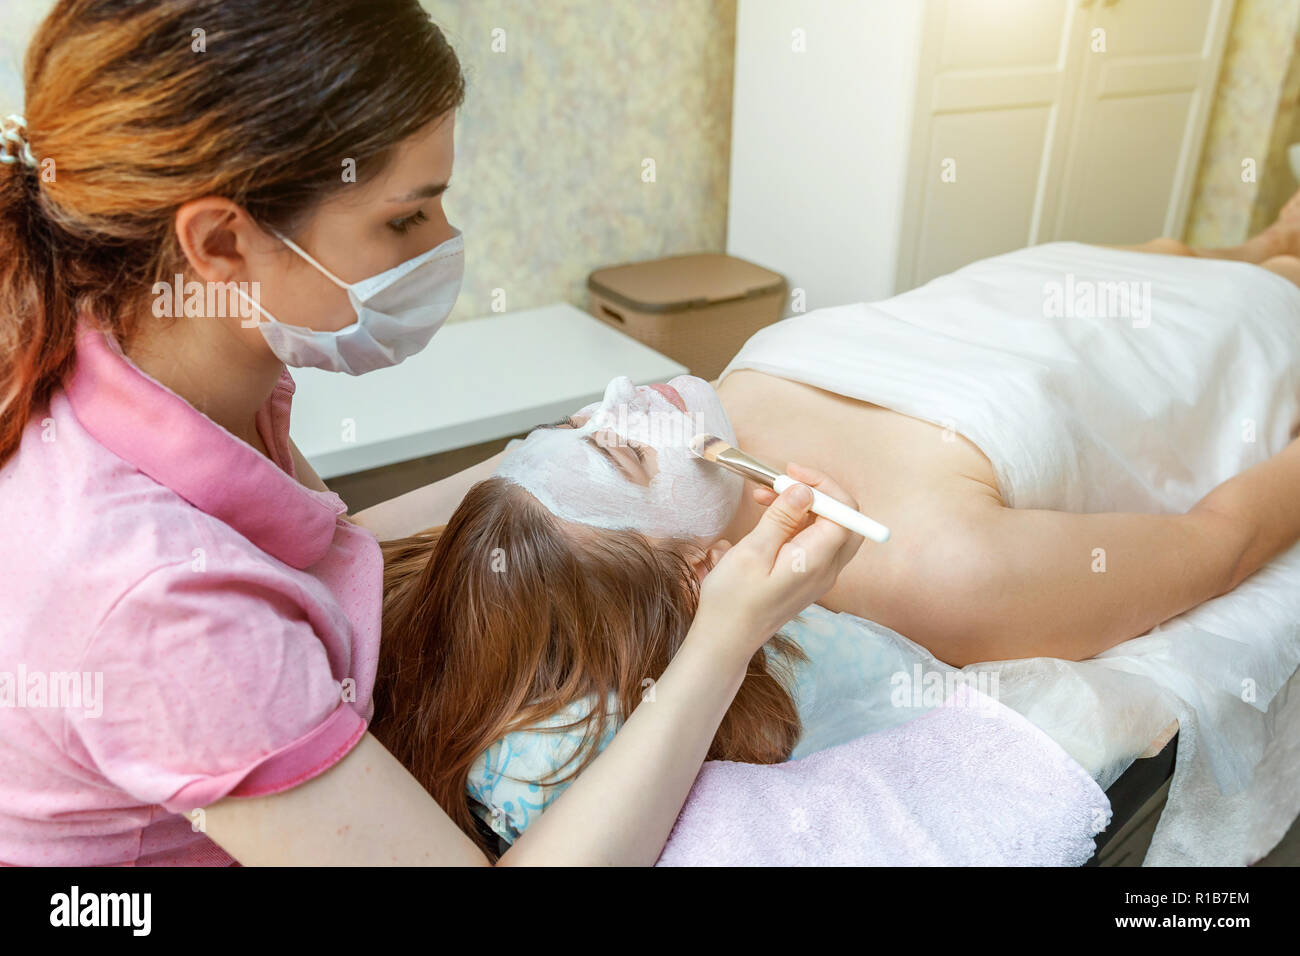 Salon Creme Close Up Of Young Beauty Brunette Woman Getting Face Treatment